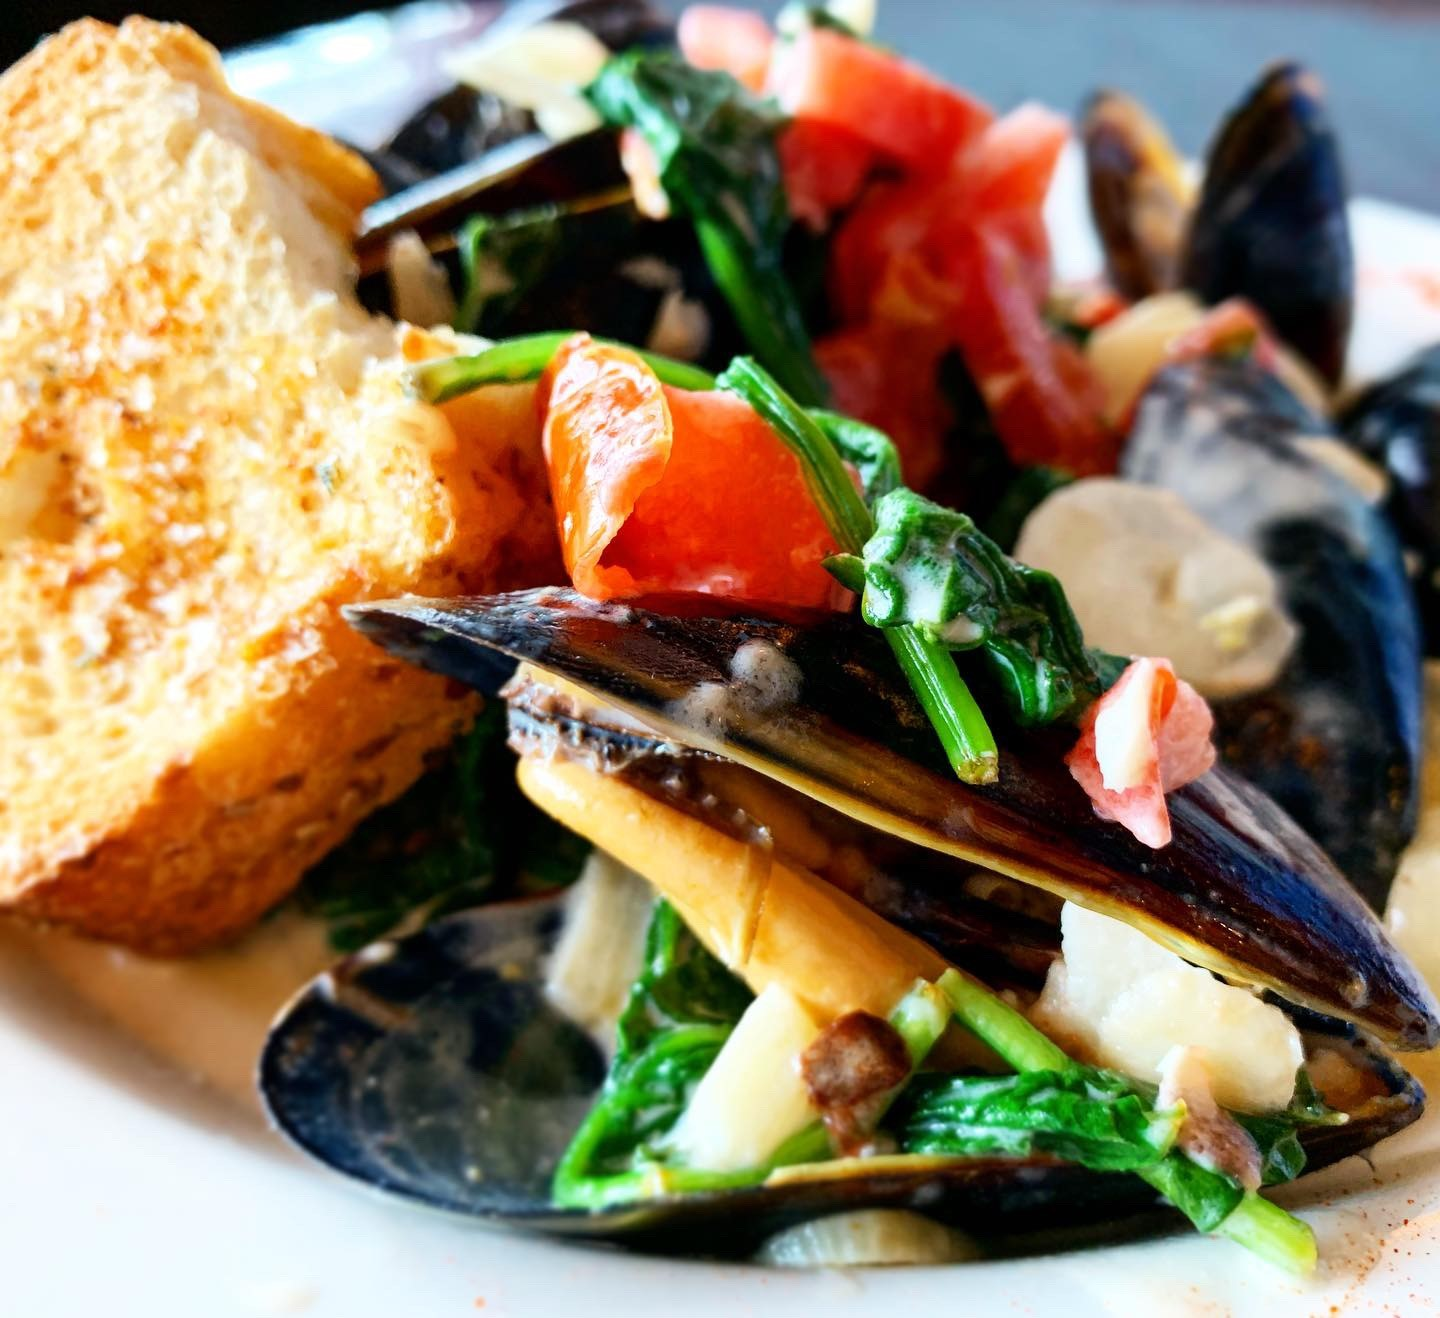 mussels in a white wine sauce with garlic bread on the side.